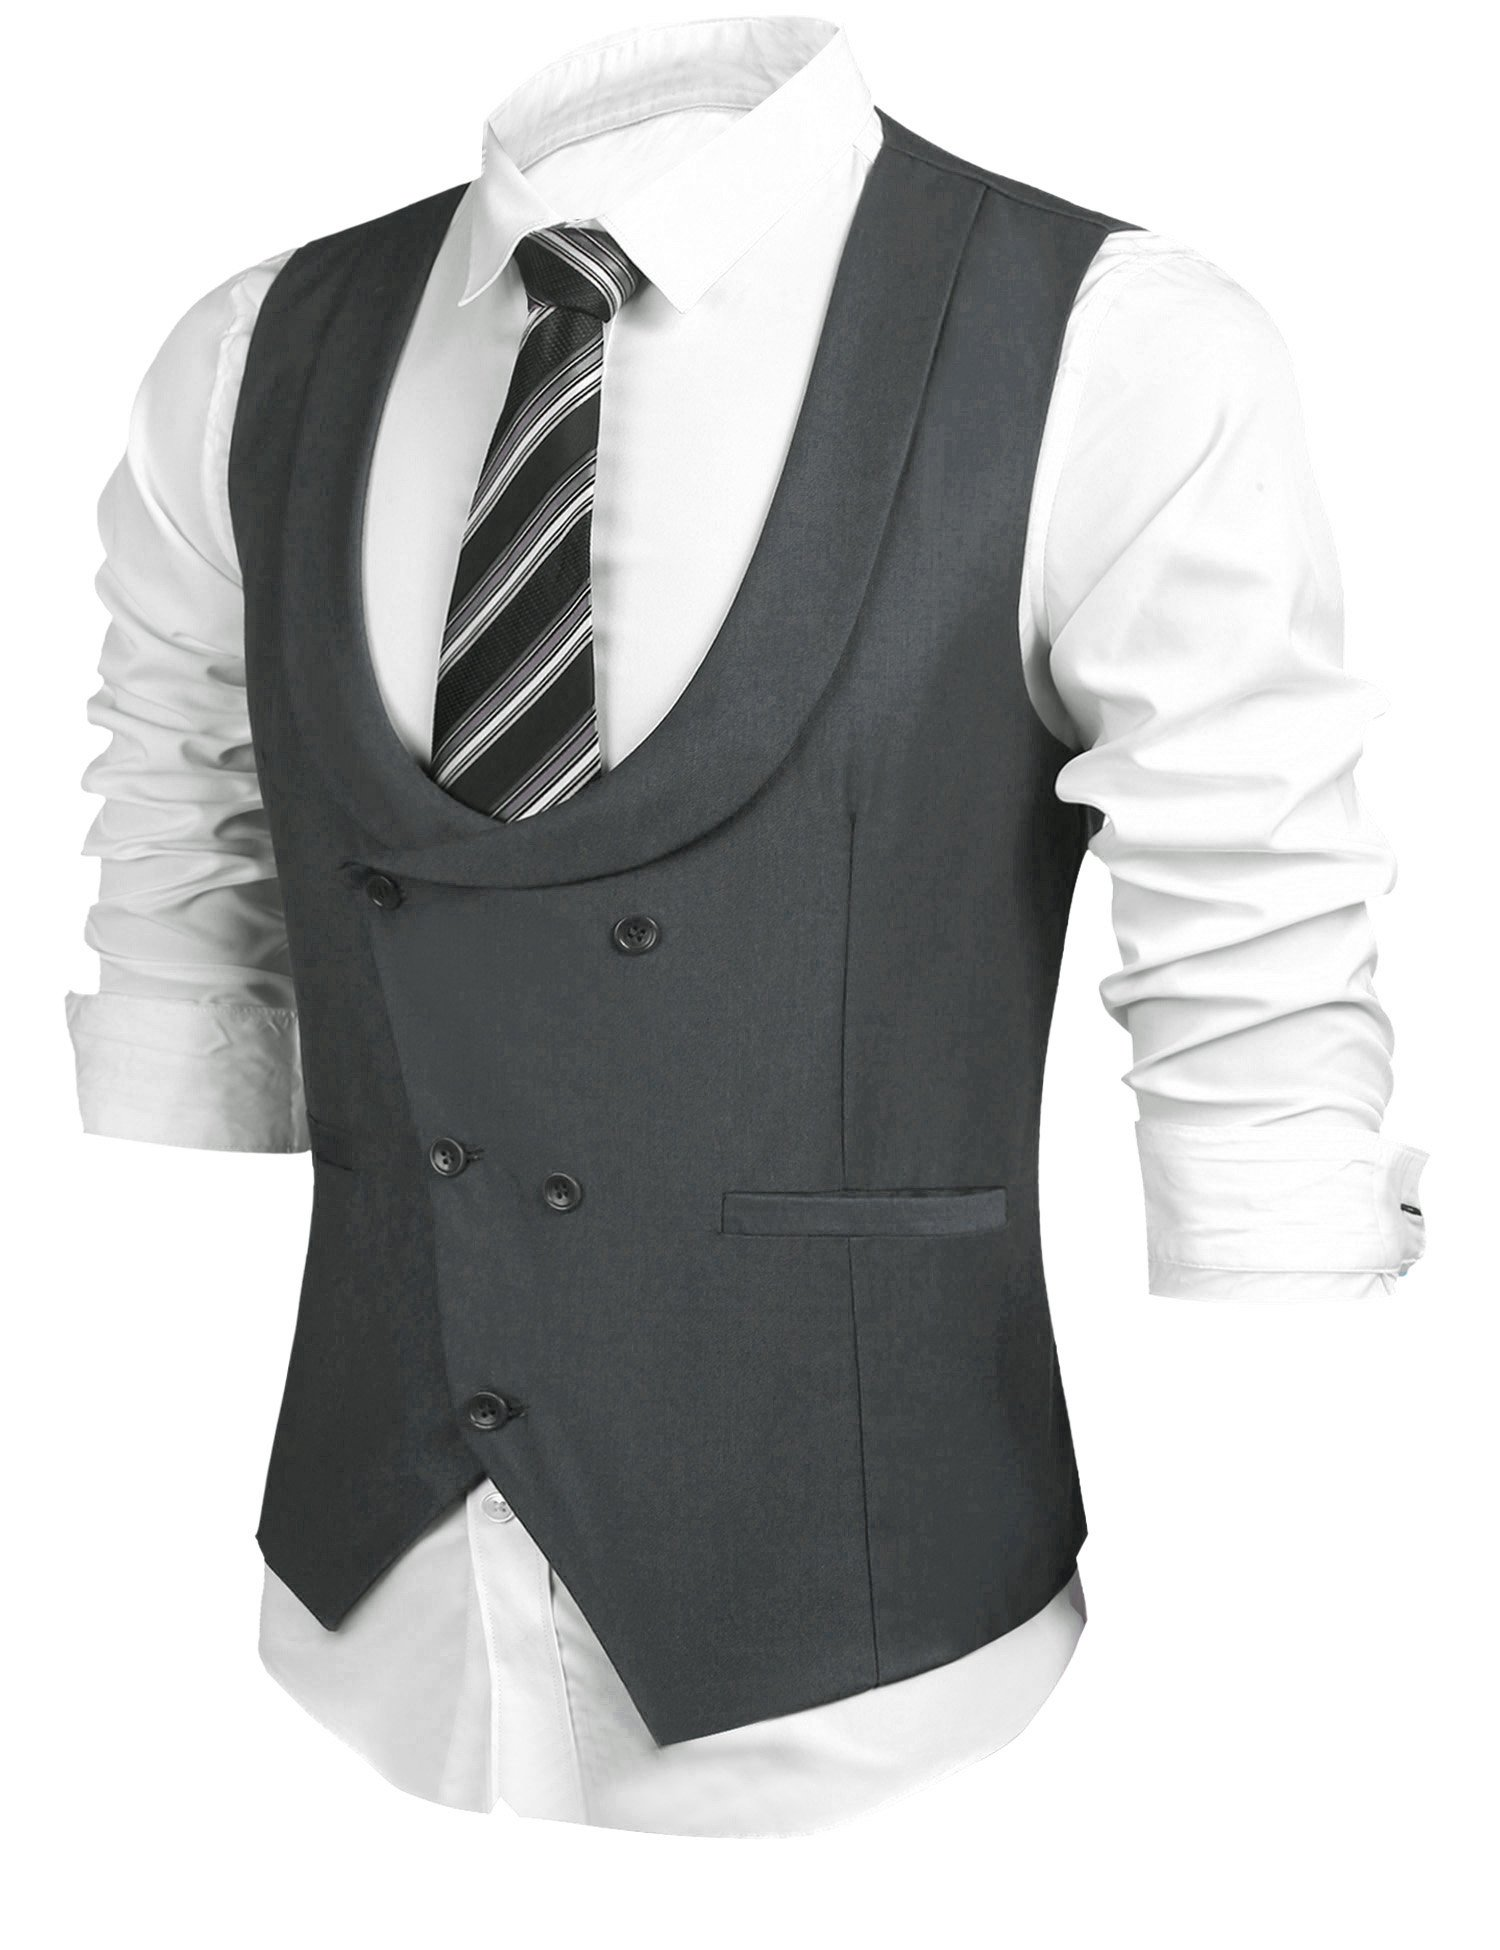 HOTOUCH Men's U-neck Slim Fit Business Suit Vest Waistcoat for Wedding, Date&Party (Gray L)